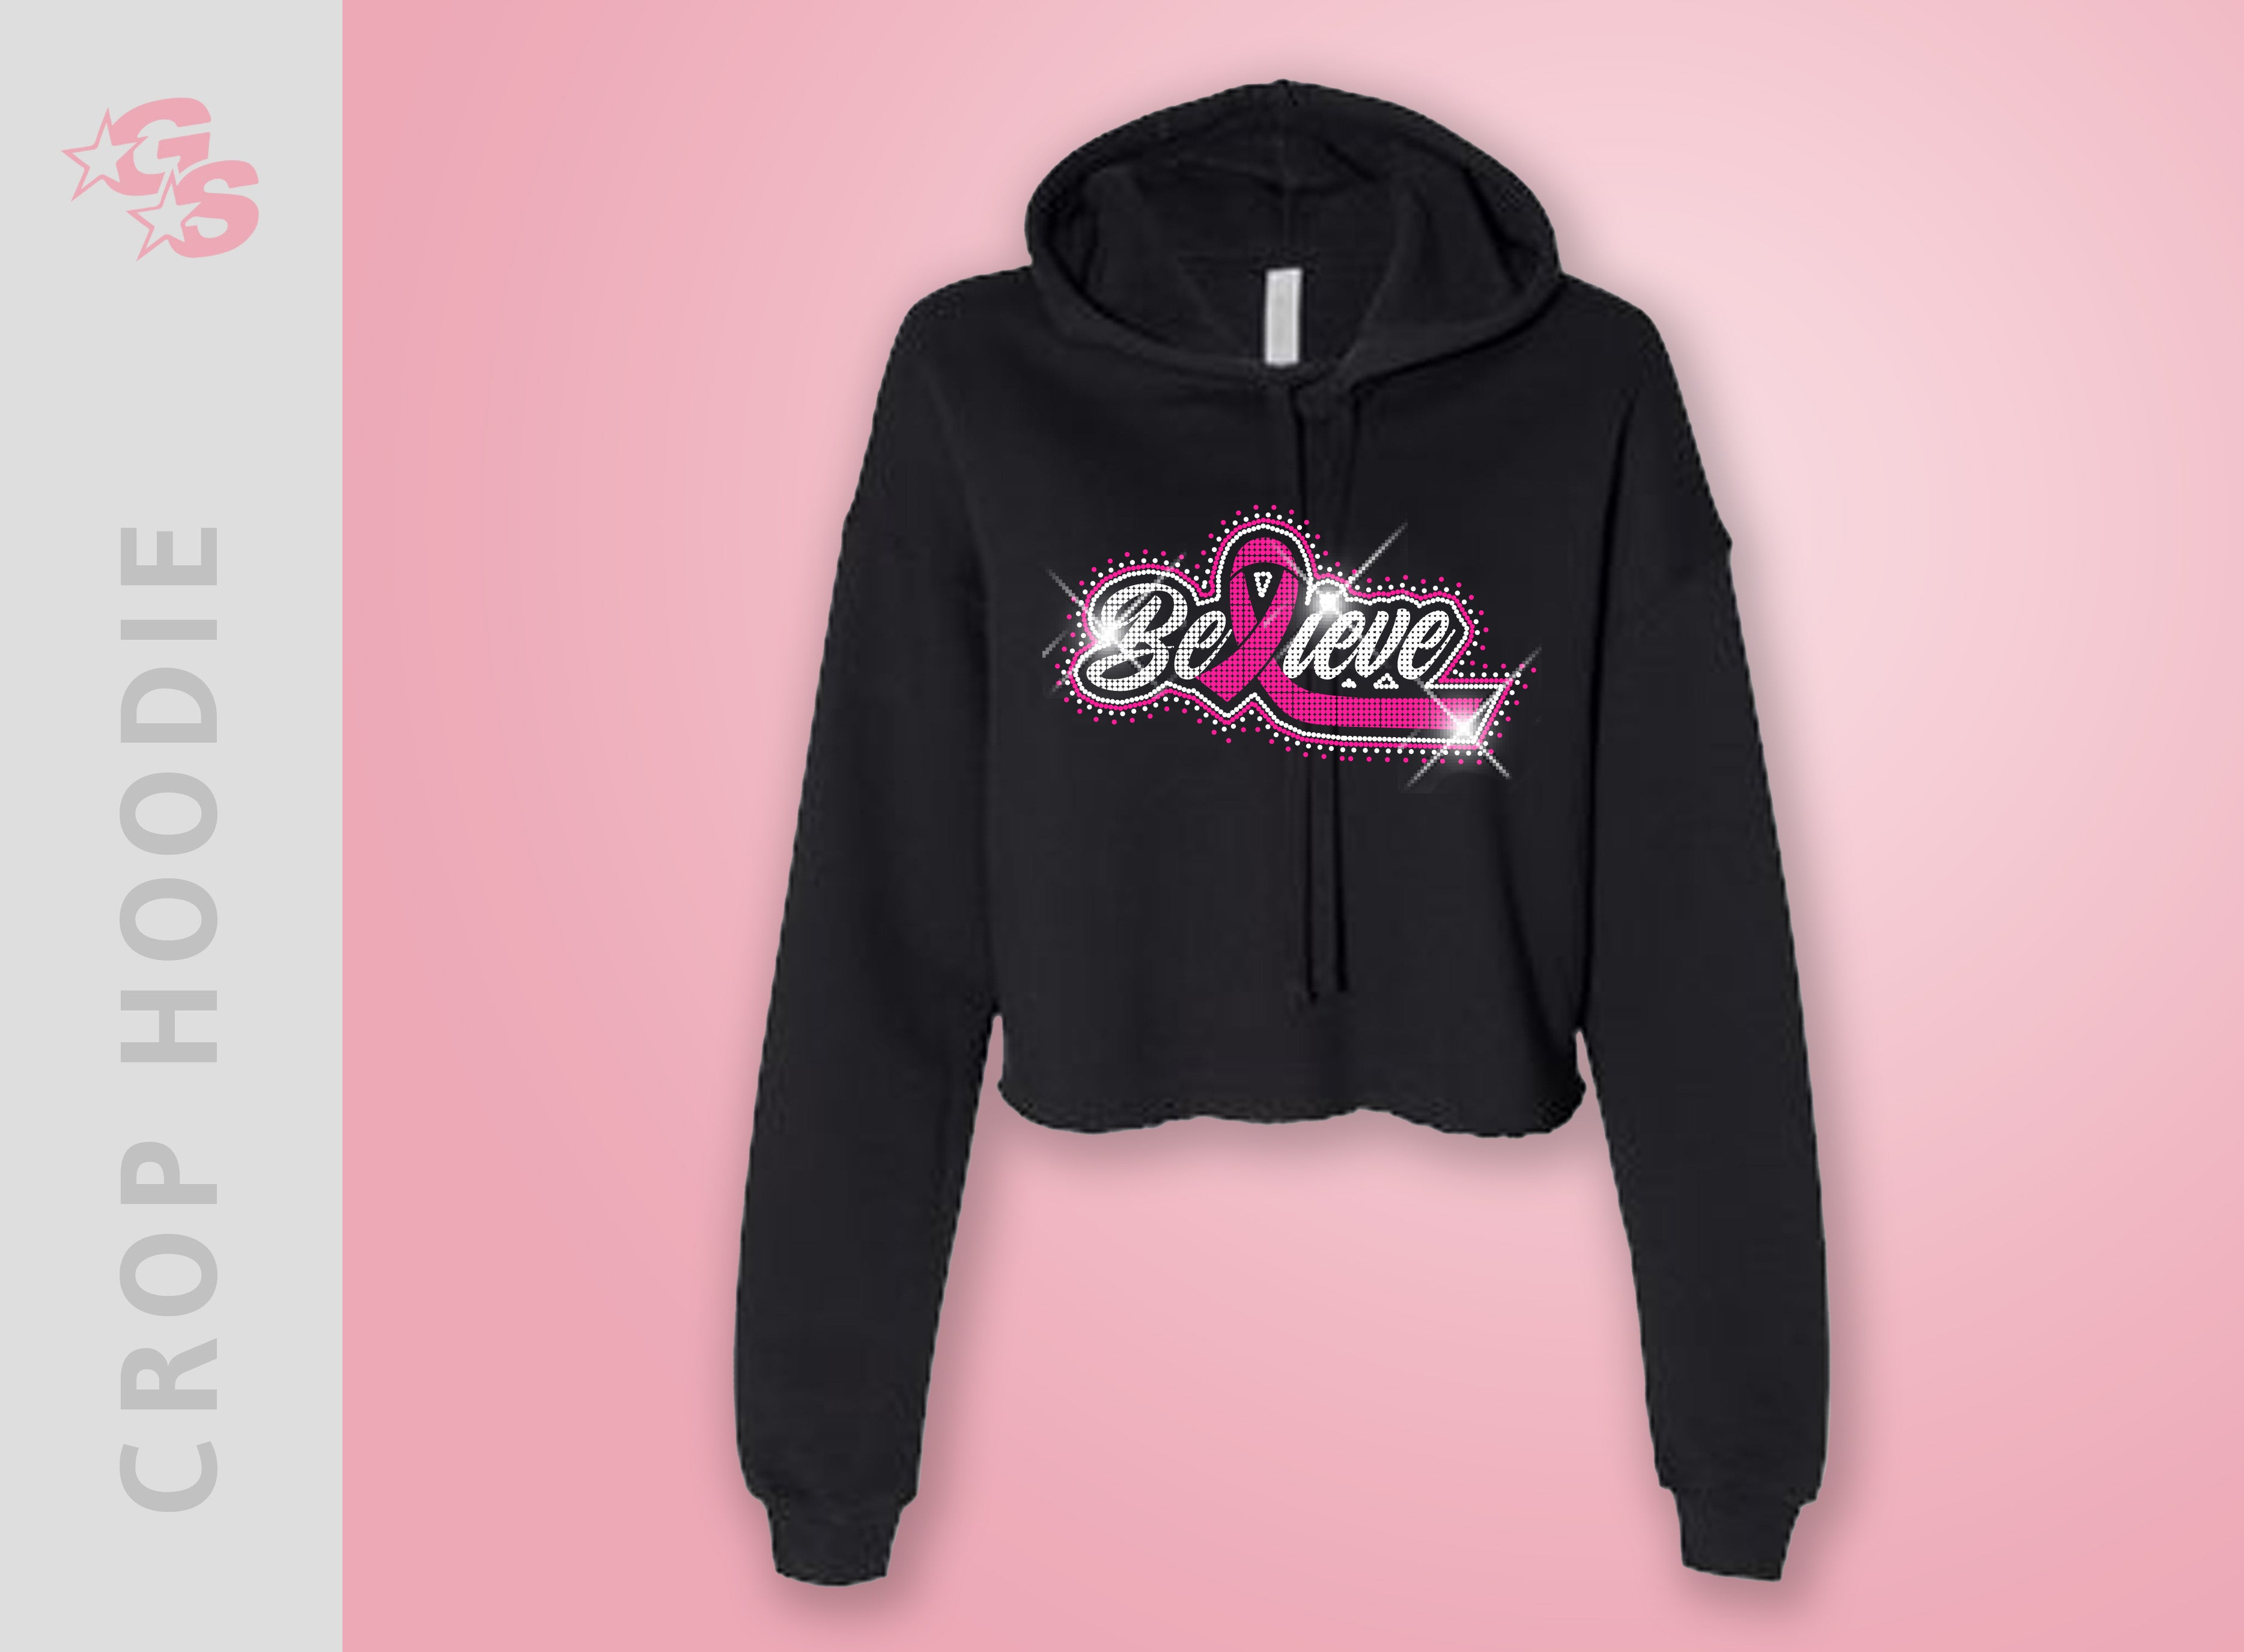 Breast Cancer Awareness Crop Hoodie with Bling Logo - Adult Sizes Only